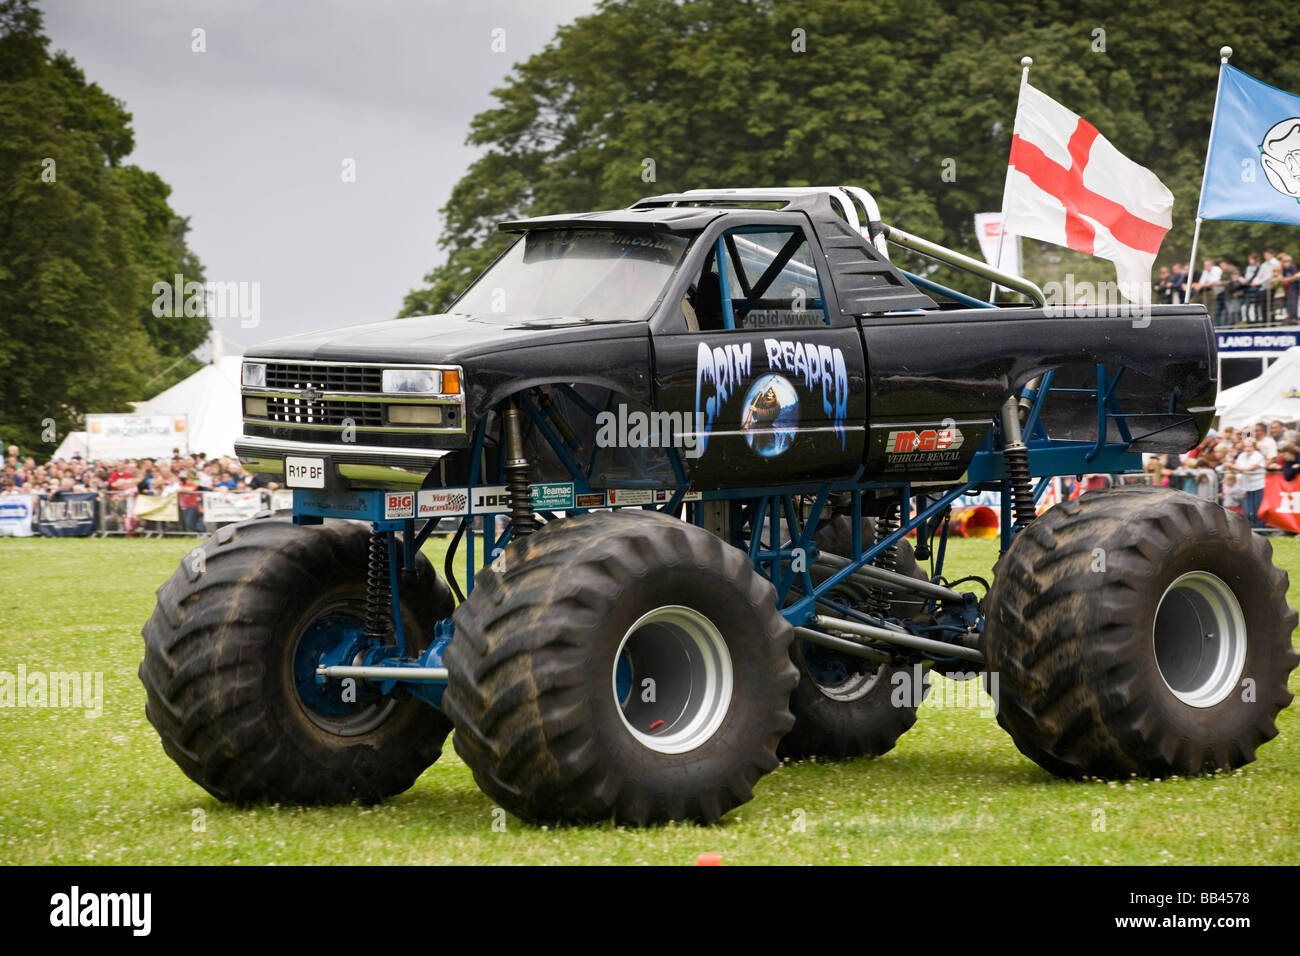 Monster trucks crushing old cars at a farm show, Gloucestershire, UK ...